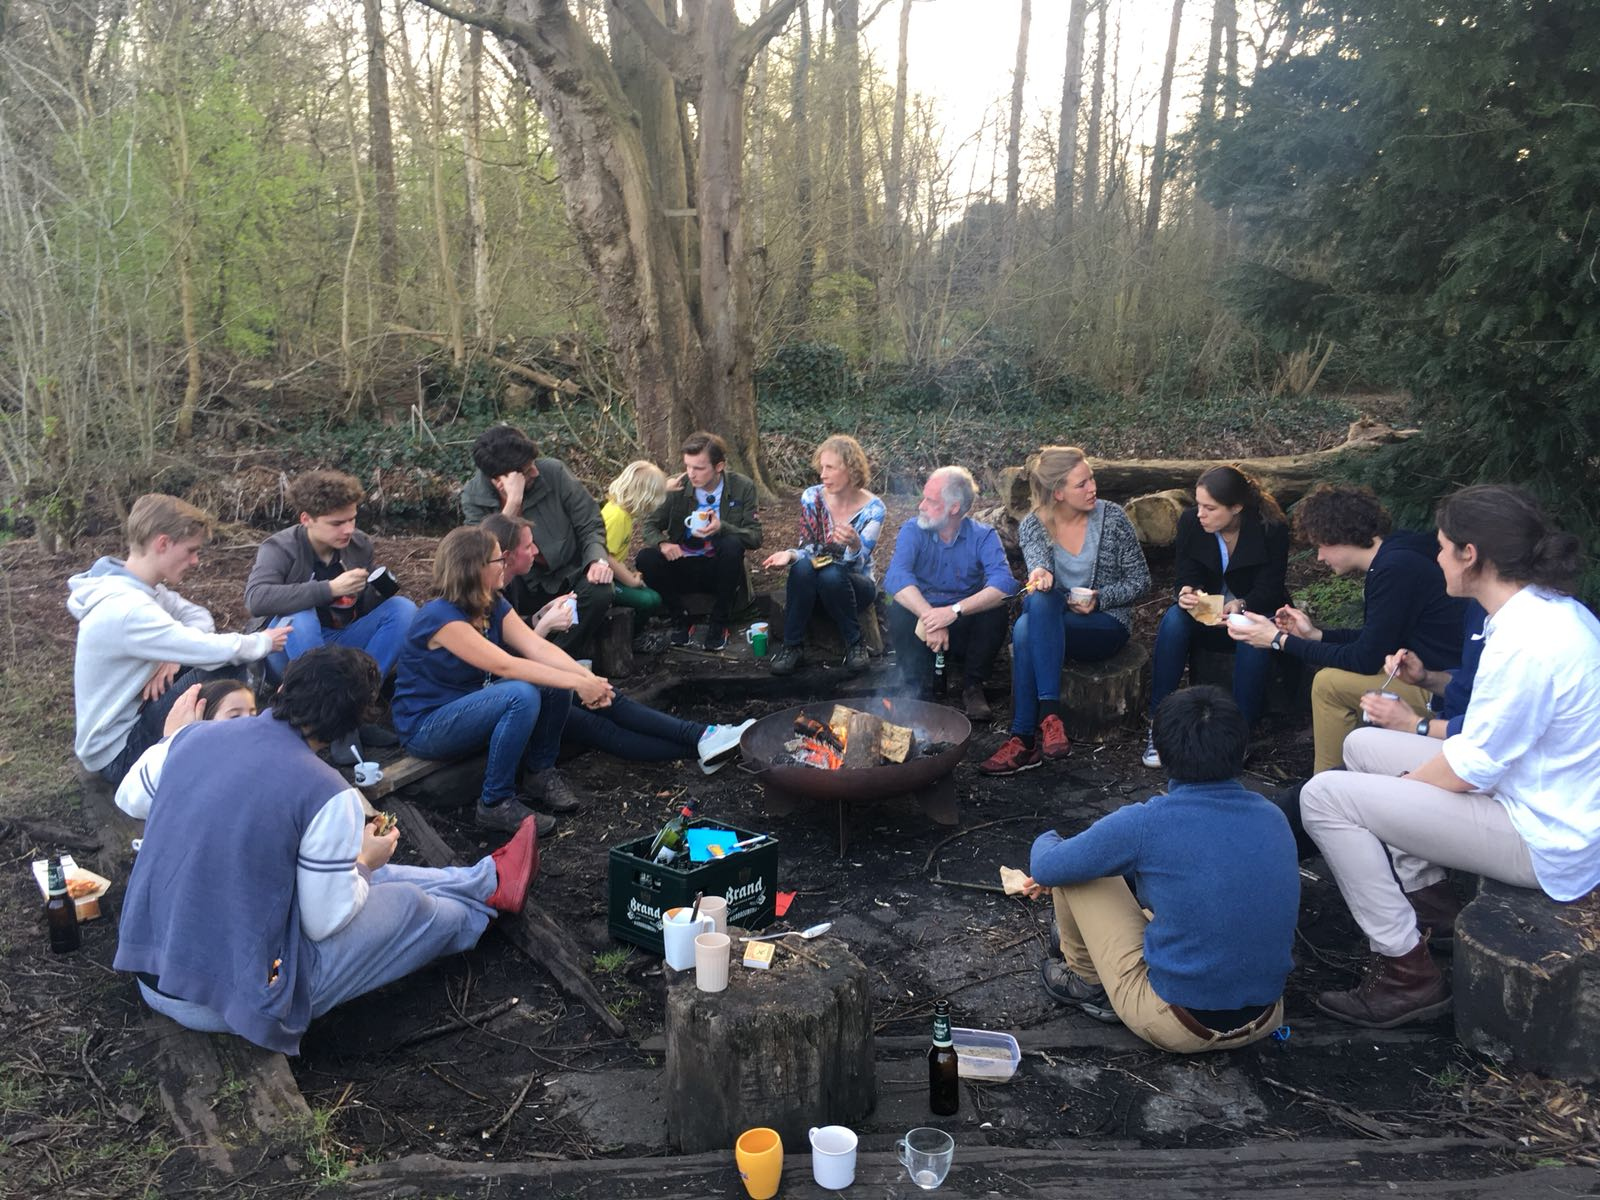 After playing games in the lovely weather, we gathered around the bonfire to eat dinner and sing songs.